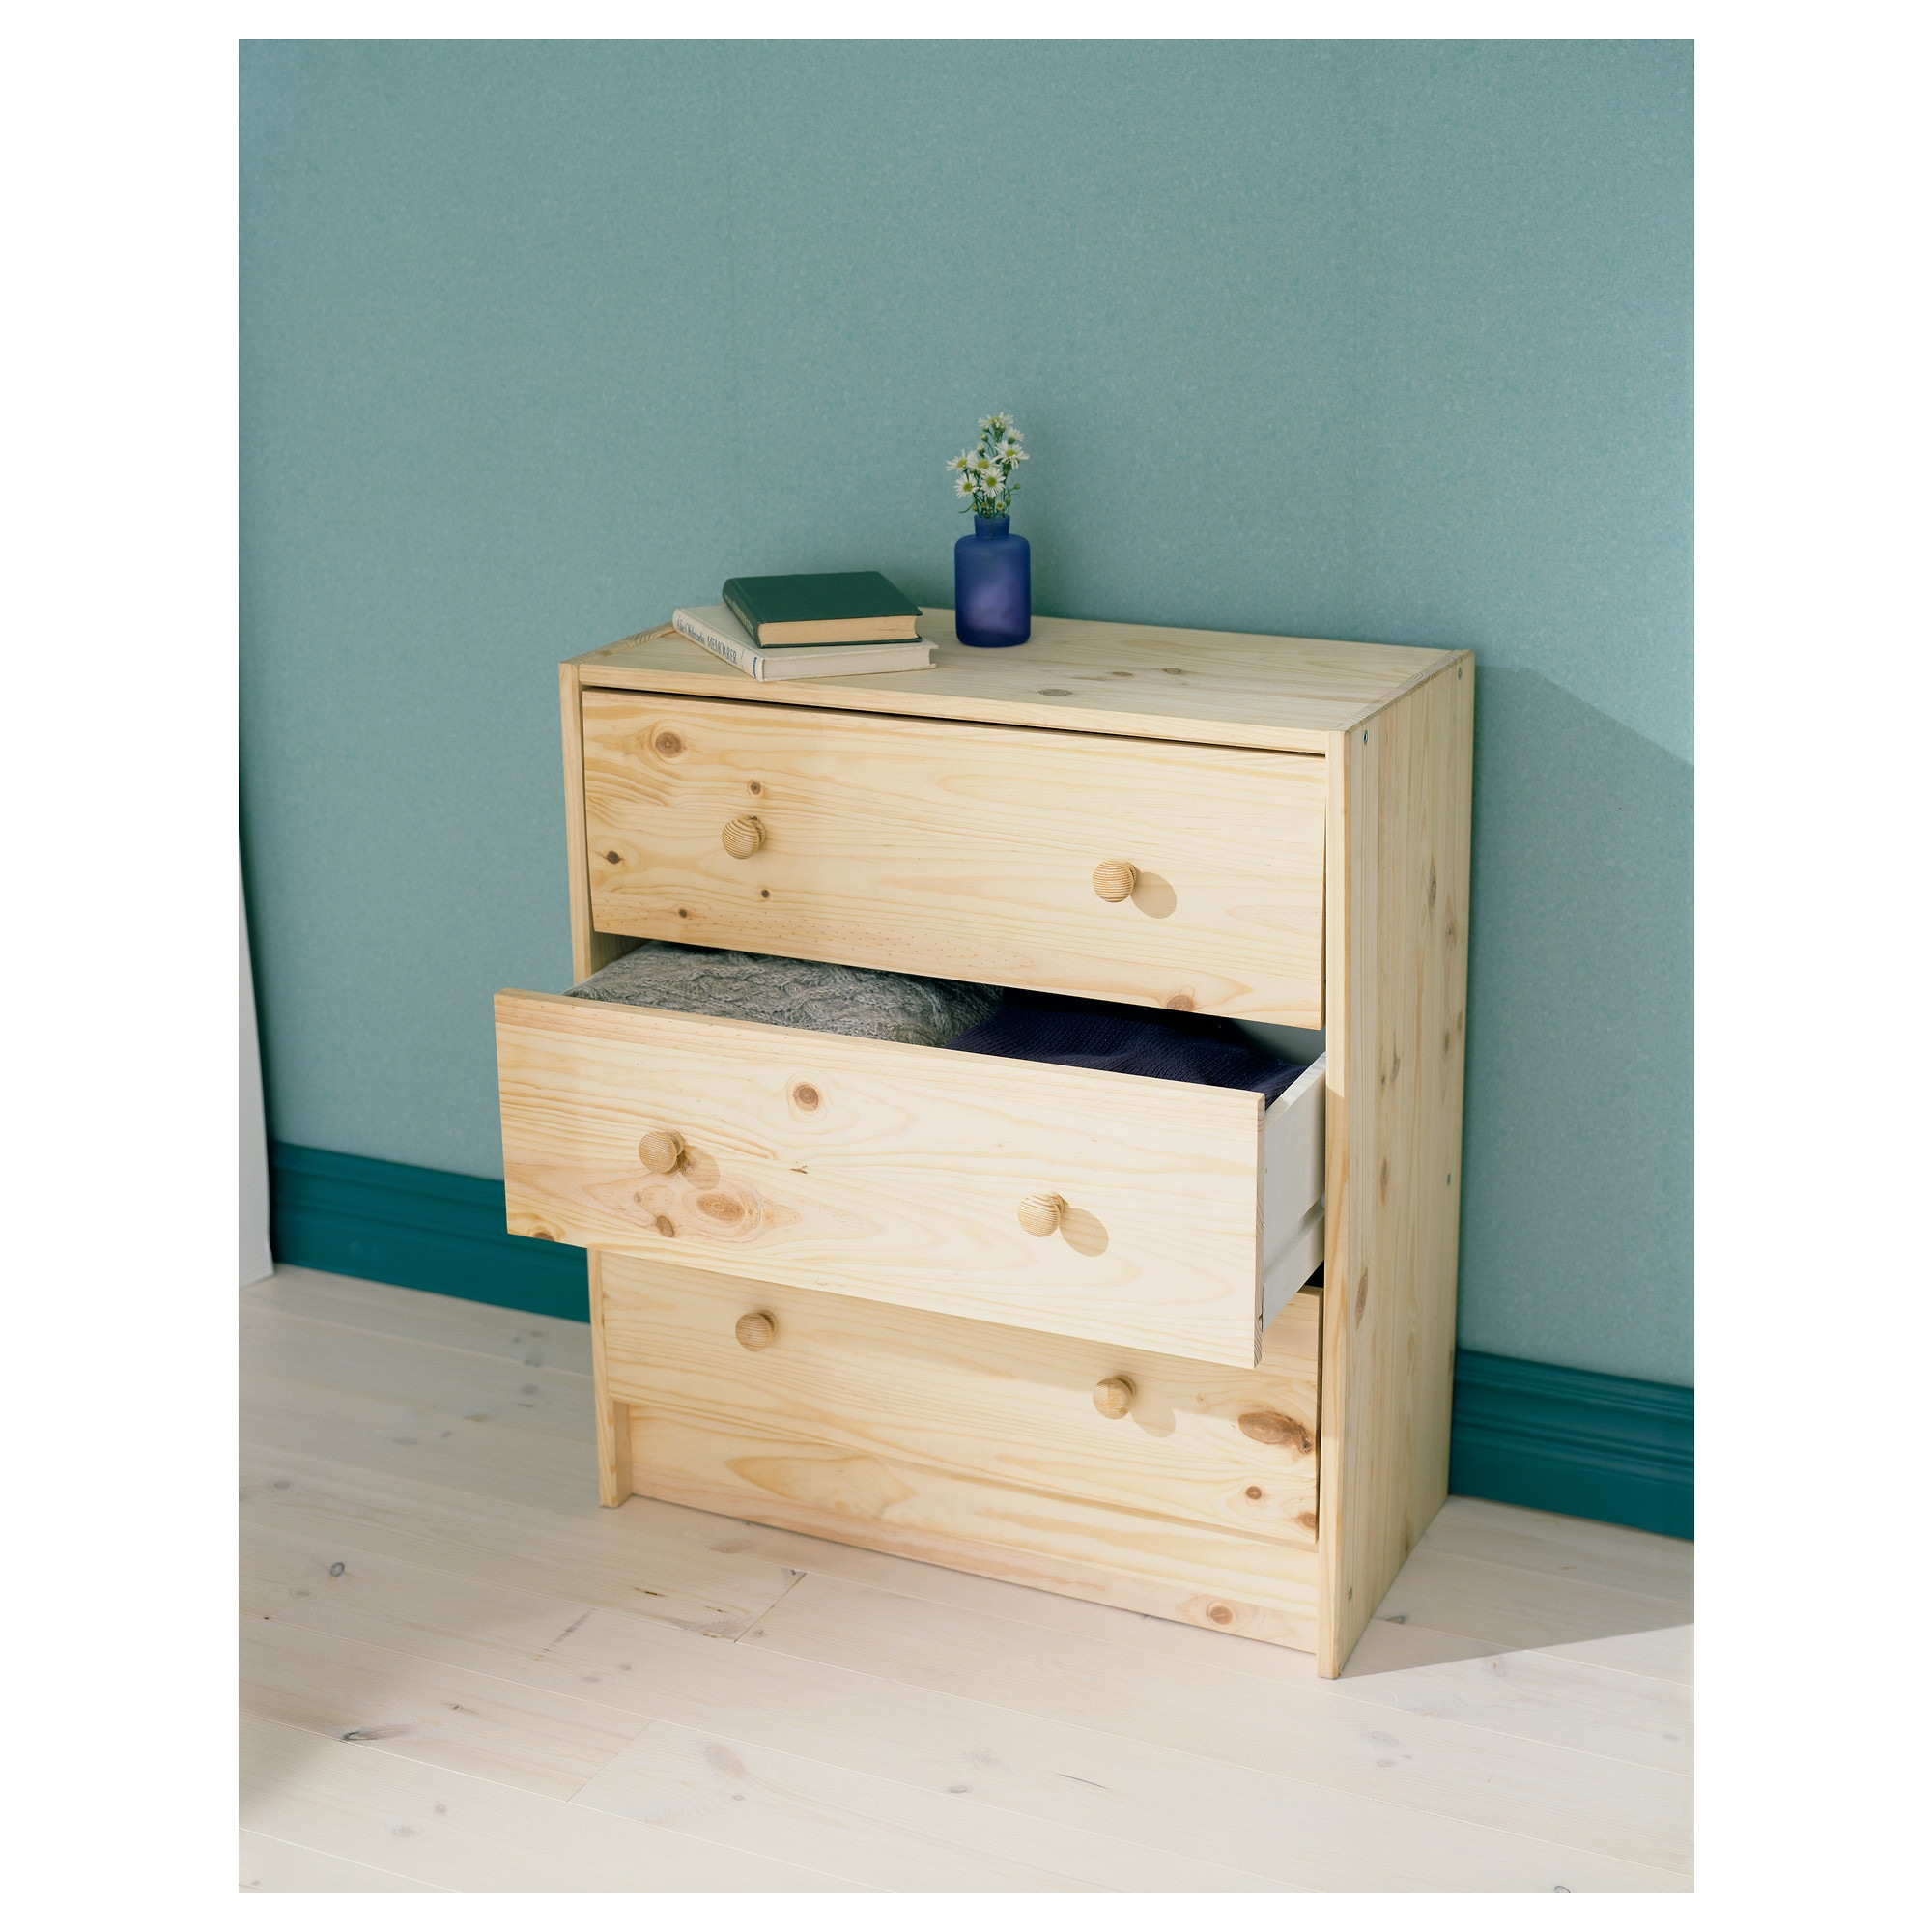 RAST 3 drawer chest IKEA